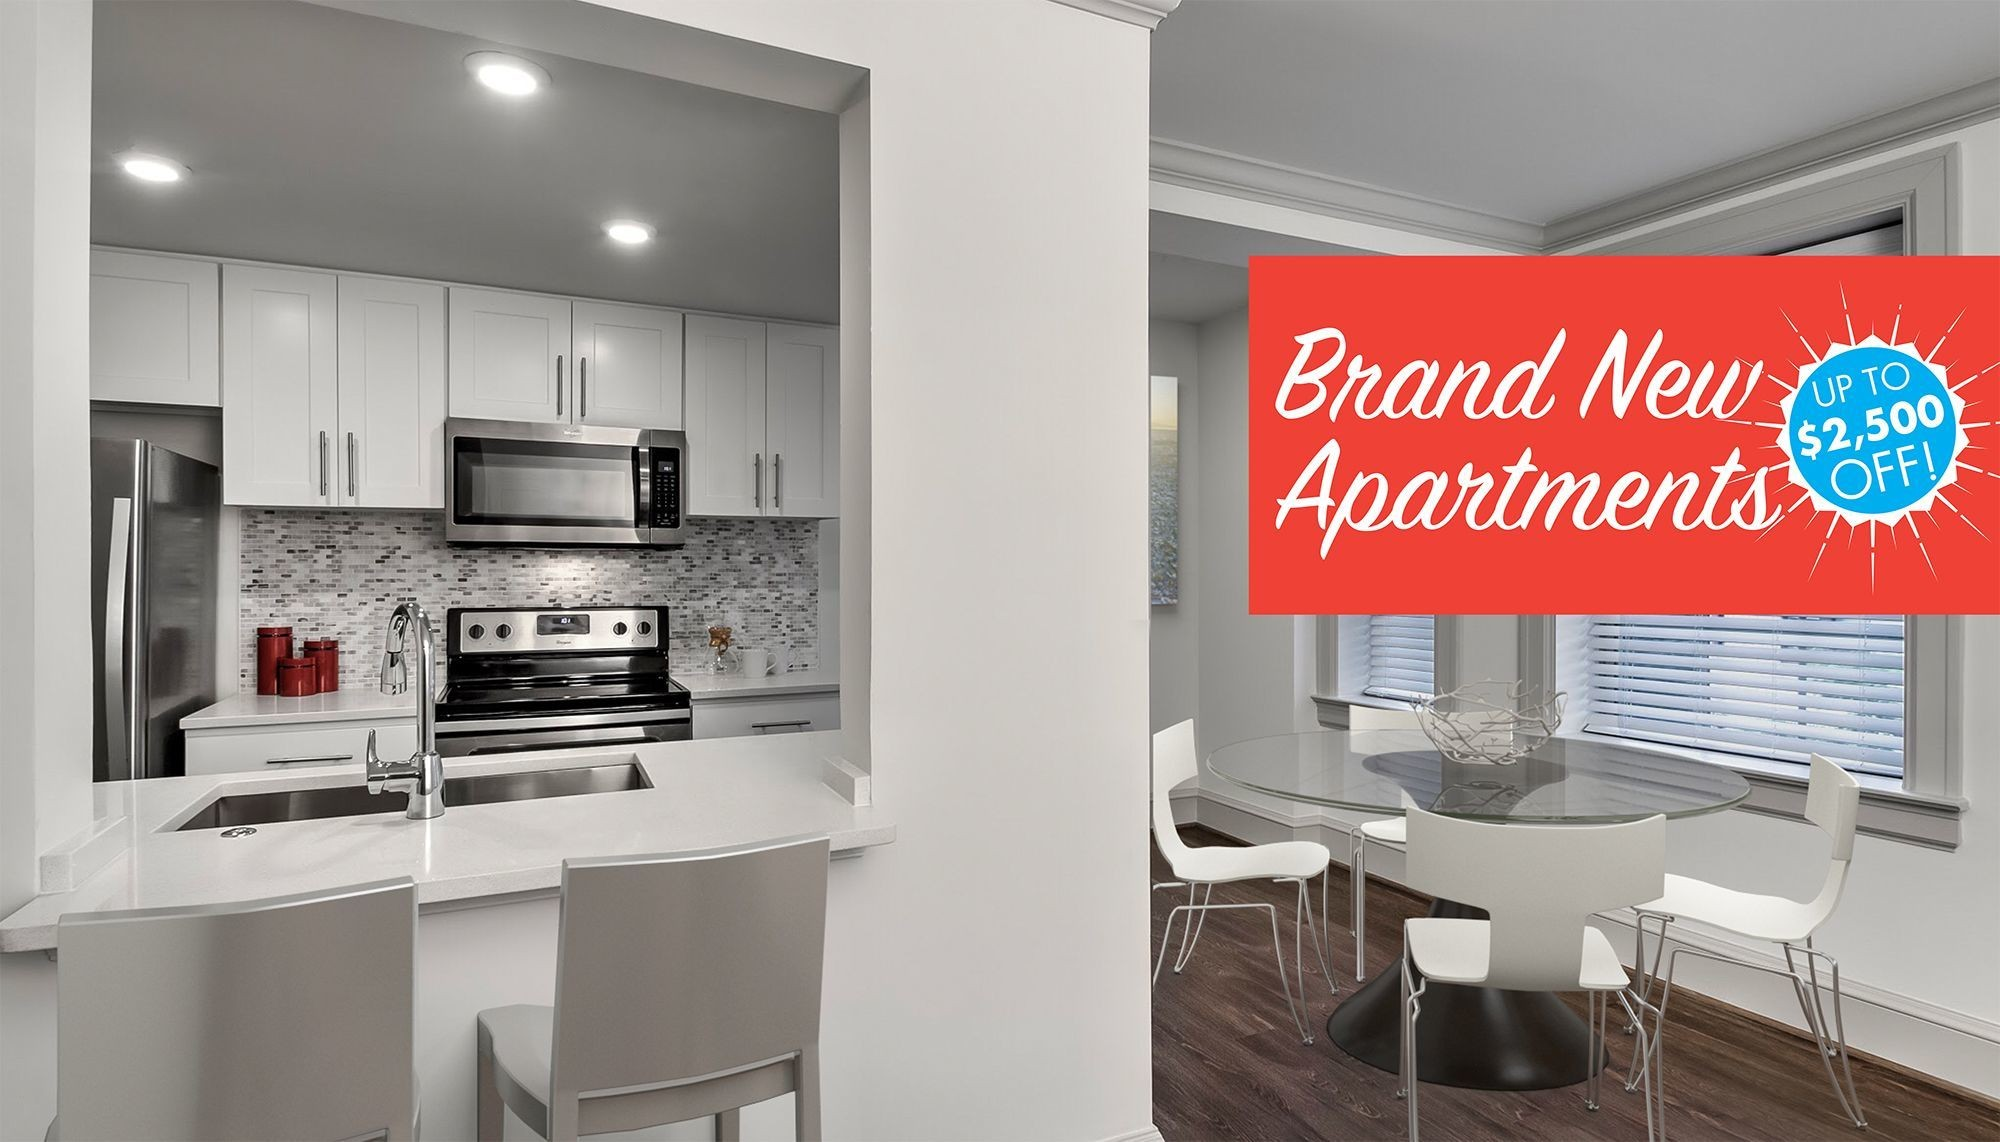 4 047 apartments for rent in washington dc zumper